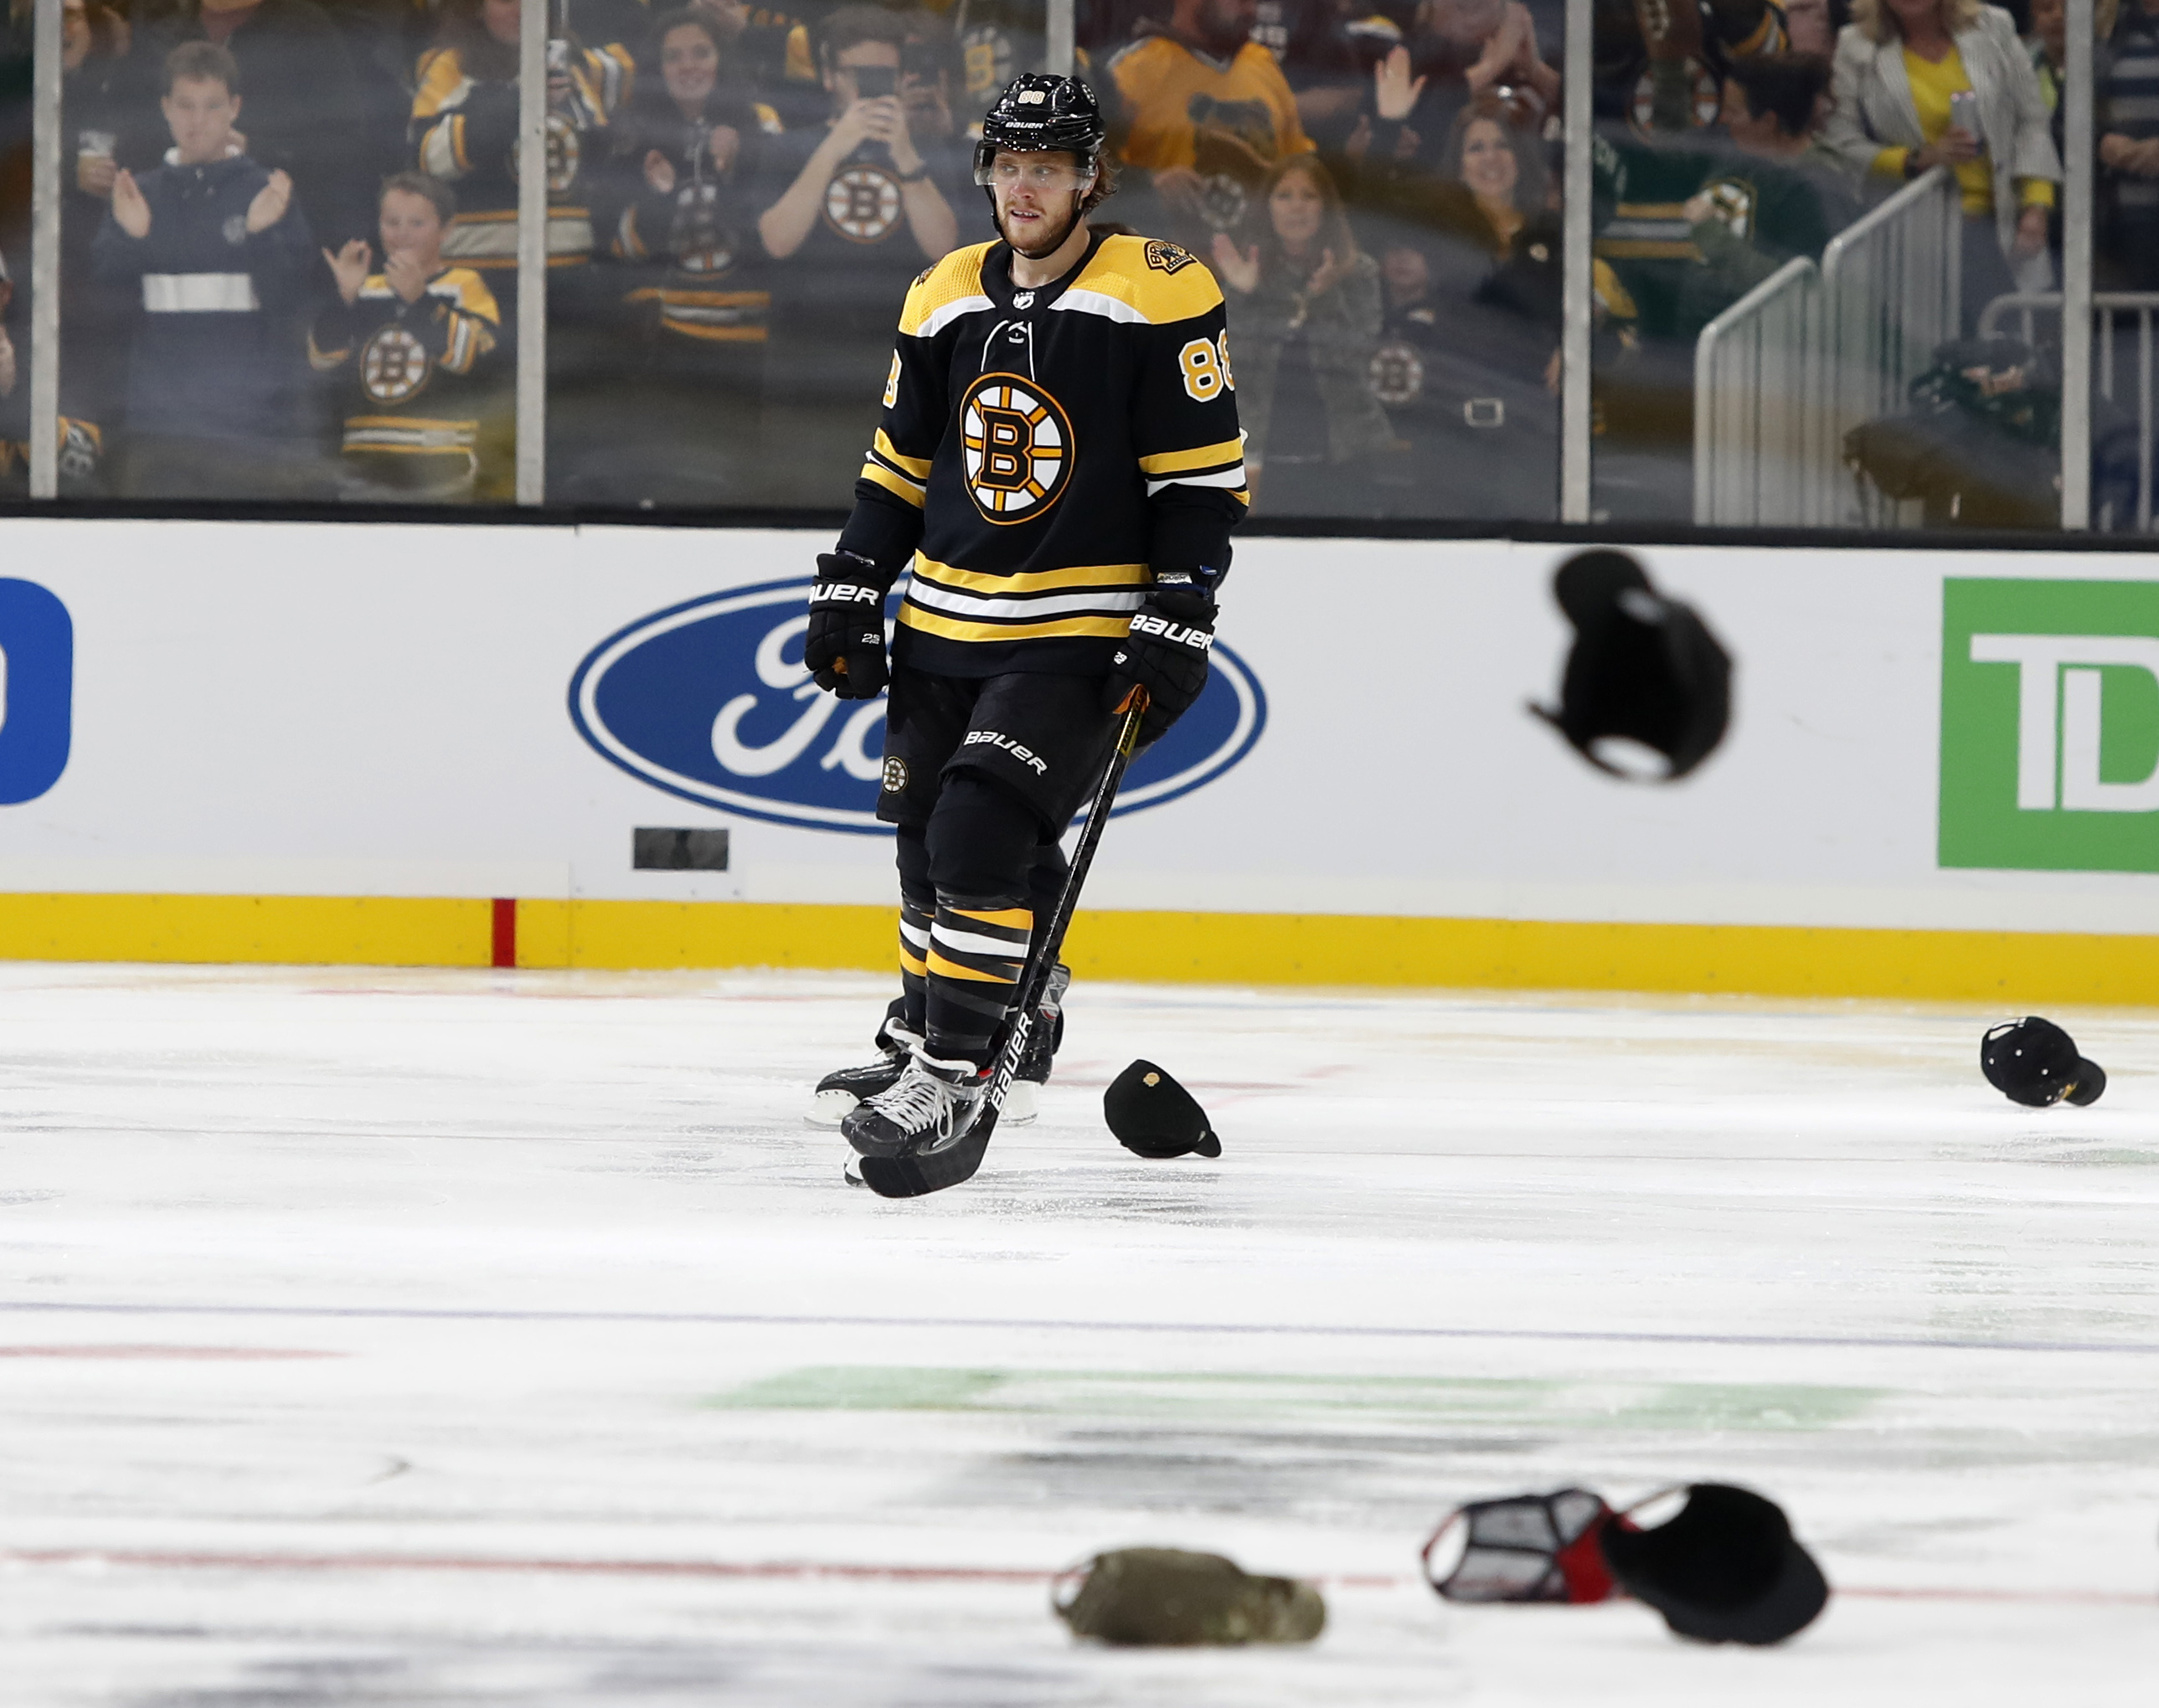 David Pastrnak's 4-goal game reminds Bruins what could've been last